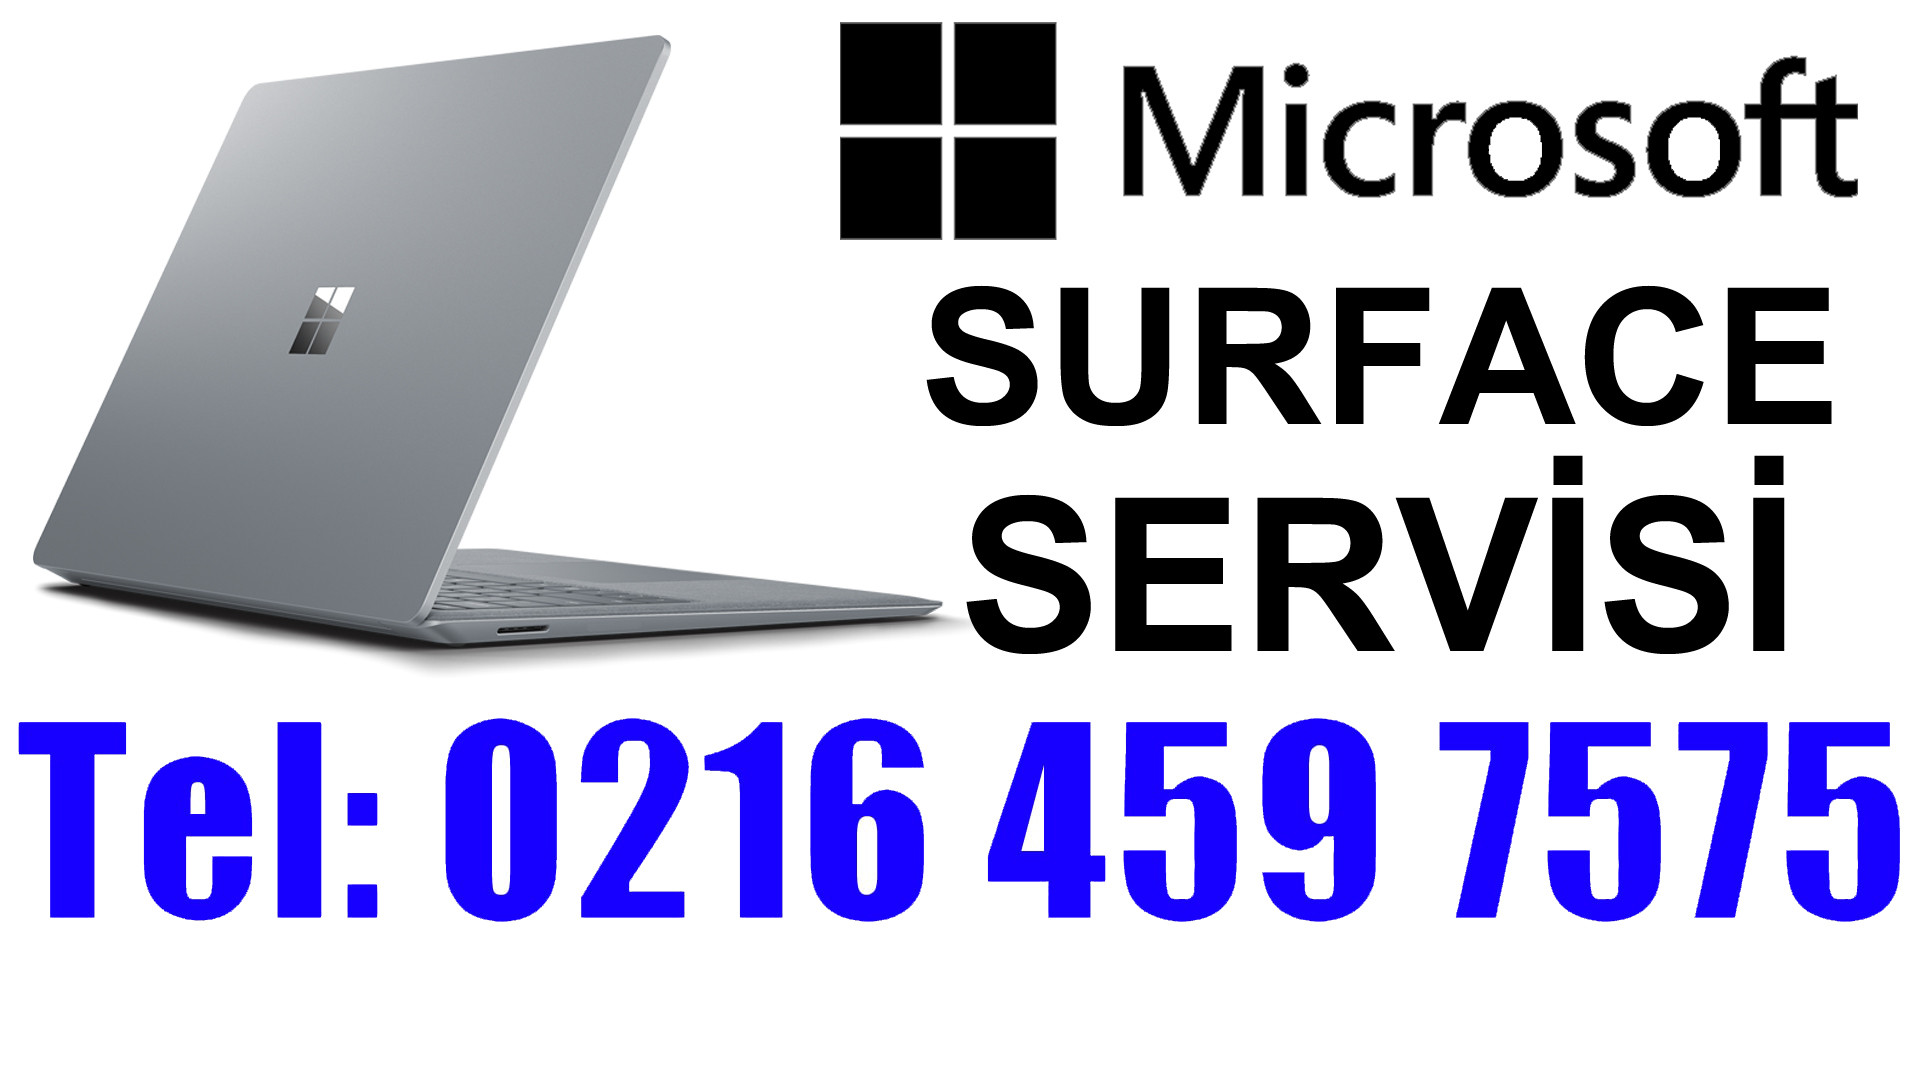 Microsoft Surface Servis